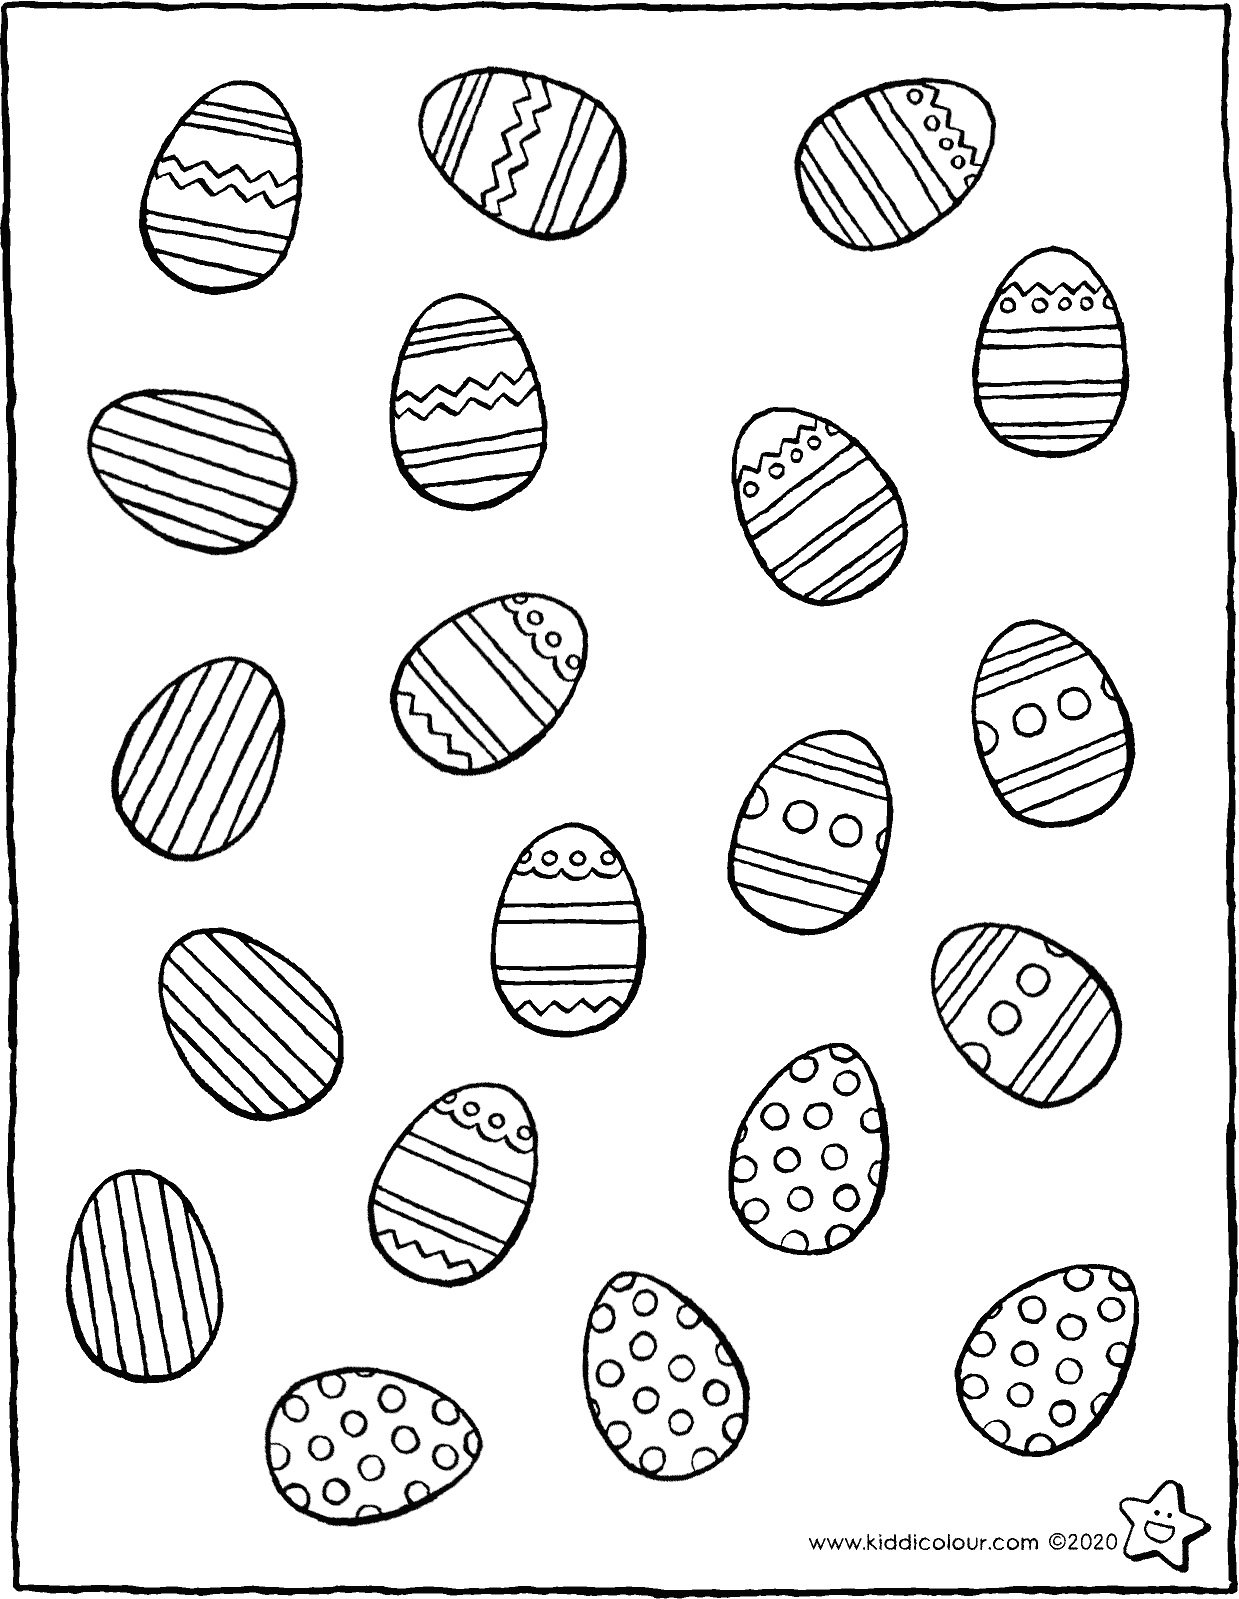 Easter make collections of the same Easter eggs colouring page drawing picture 01V